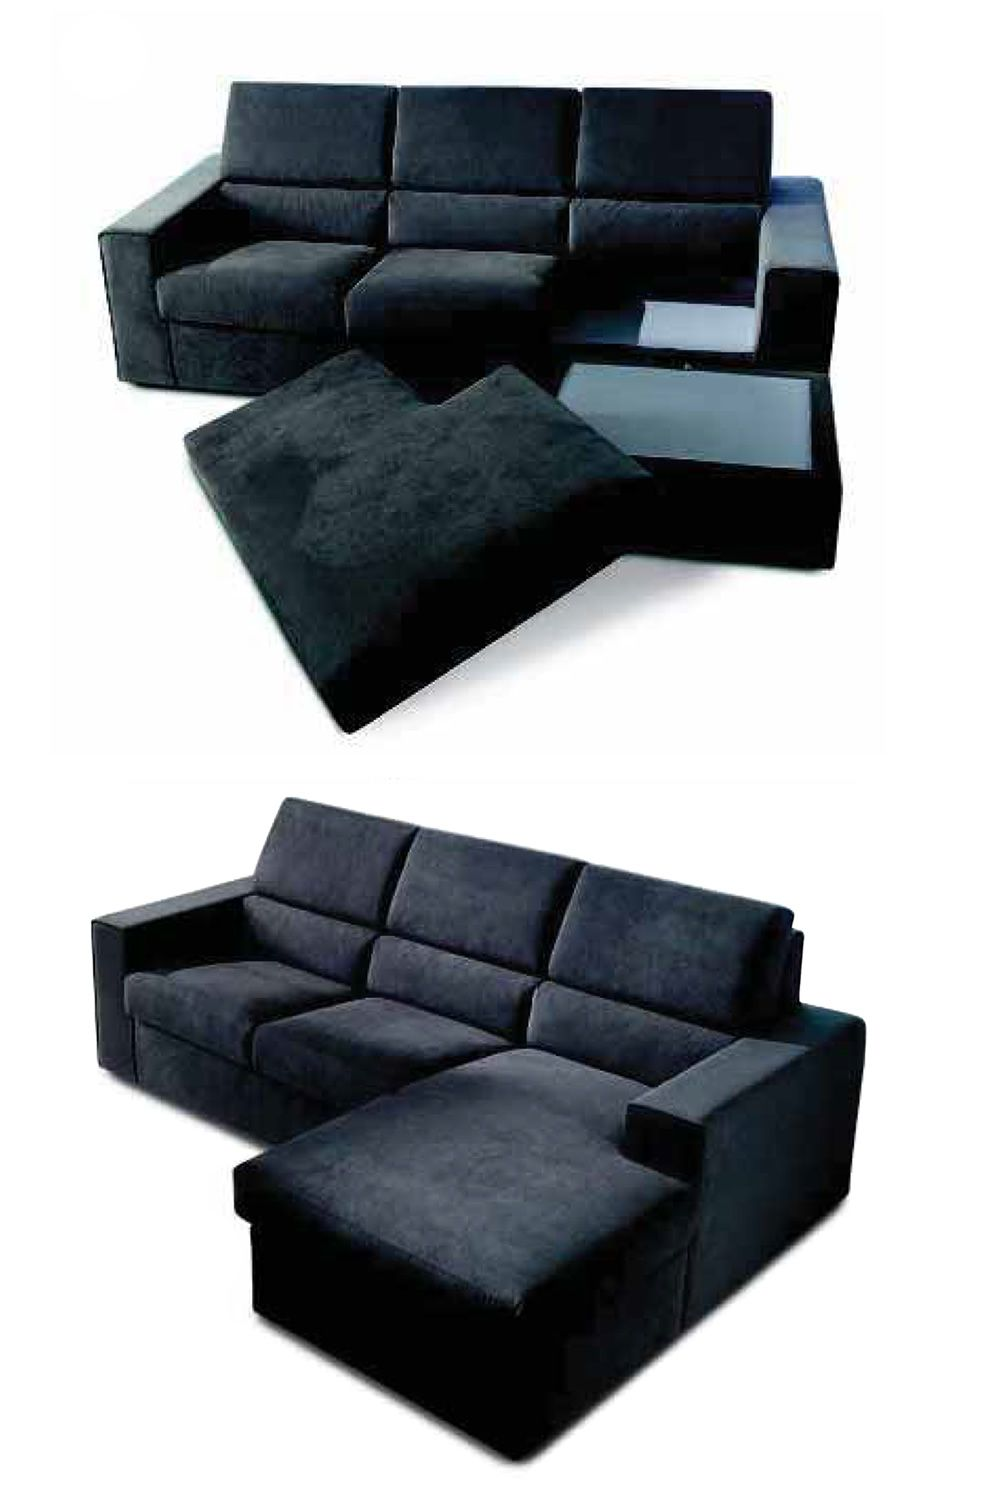 bounty p verstellbares sofa mit chaiselongue ganz. Black Bedroom Furniture Sets. Home Design Ideas